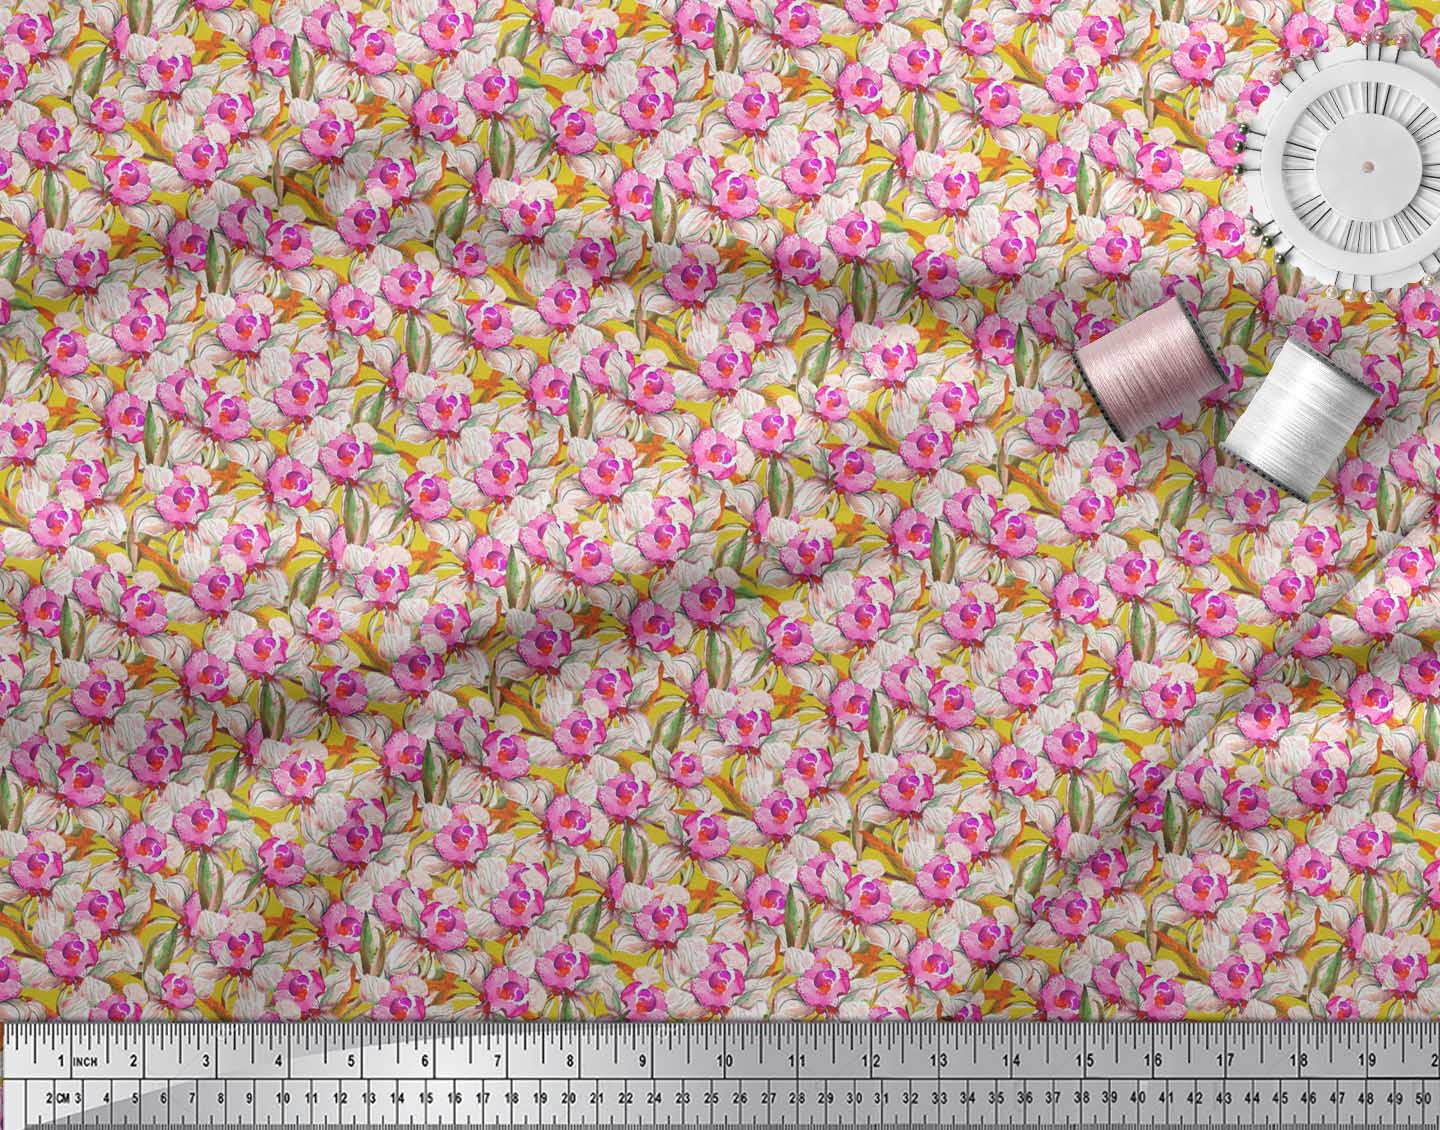 Soimoi-Yellow-Cotton-Poplin-Fabric-Leaves-amp-Daffodil-Floral-Decor-ypQ thumbnail 3